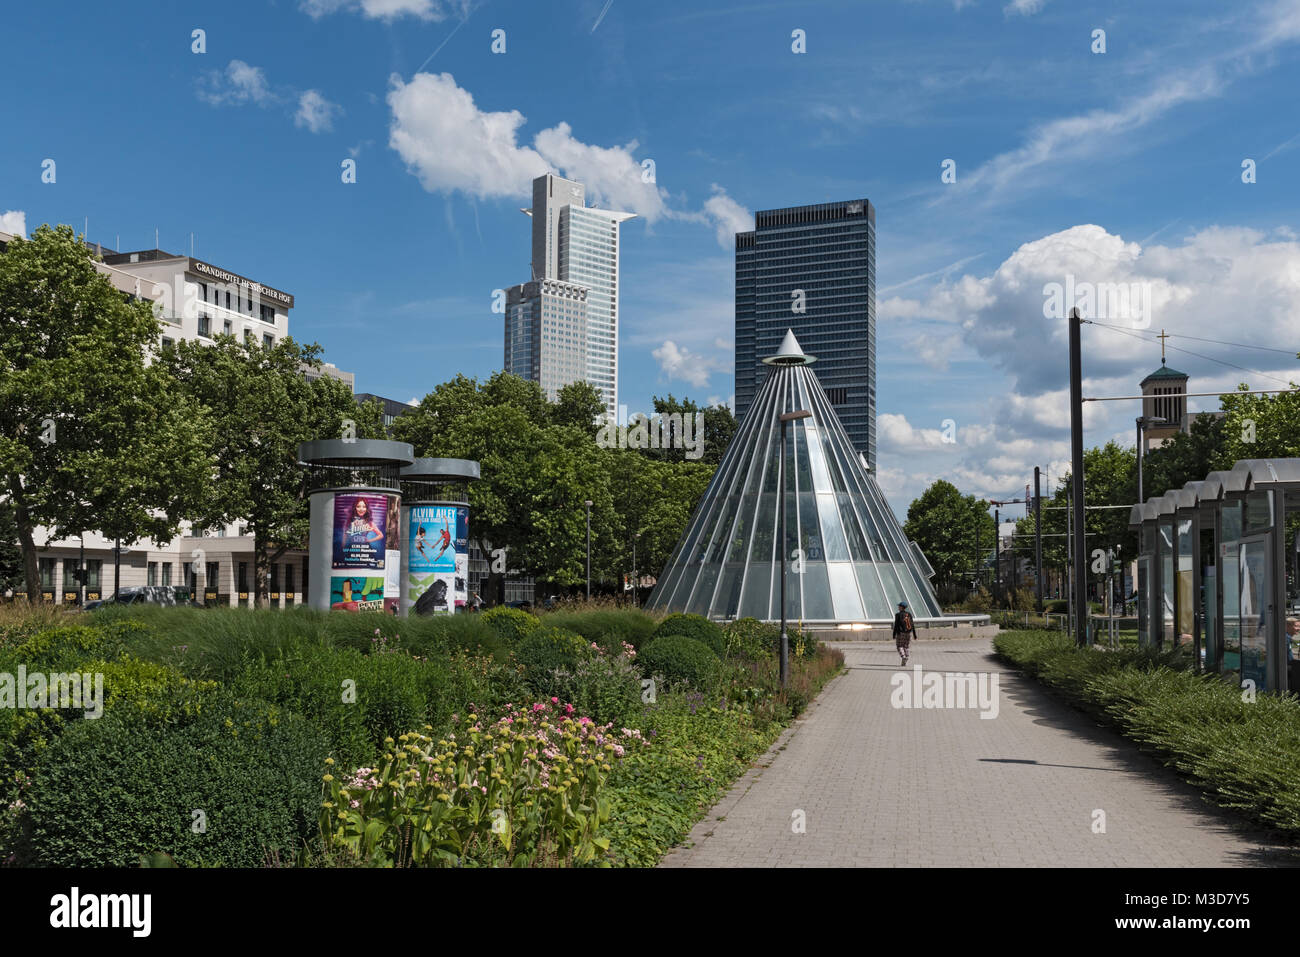 Skyscrapers and subway station at the Friedrich Ebert Park facility in Frankfurt, Germany - Stock Image